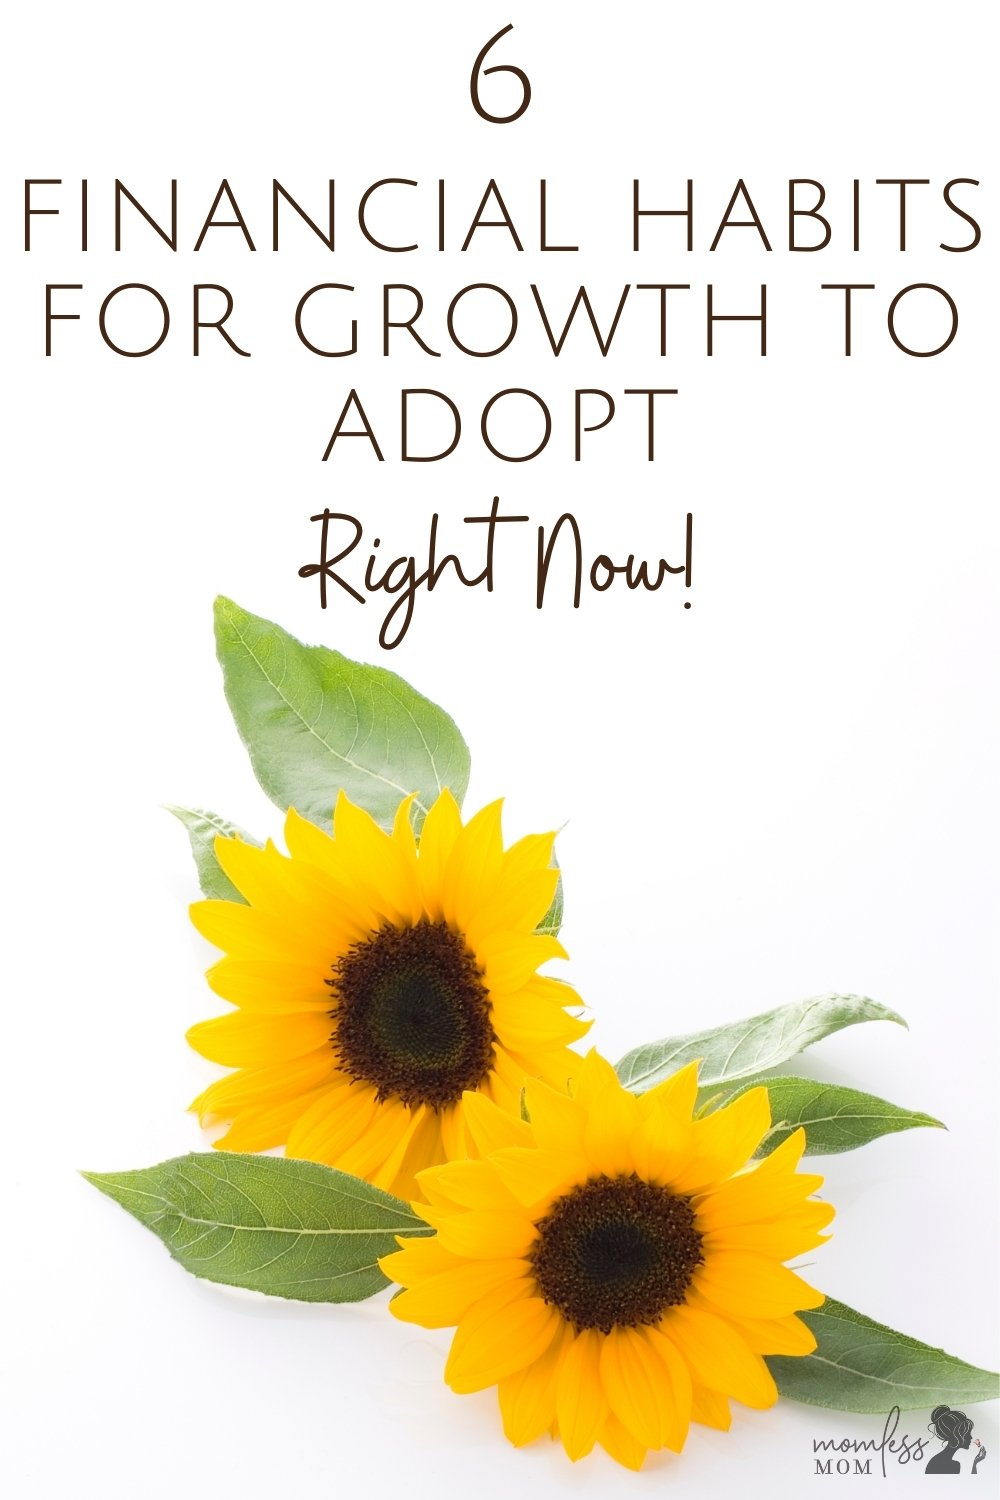 Financial habits for growth